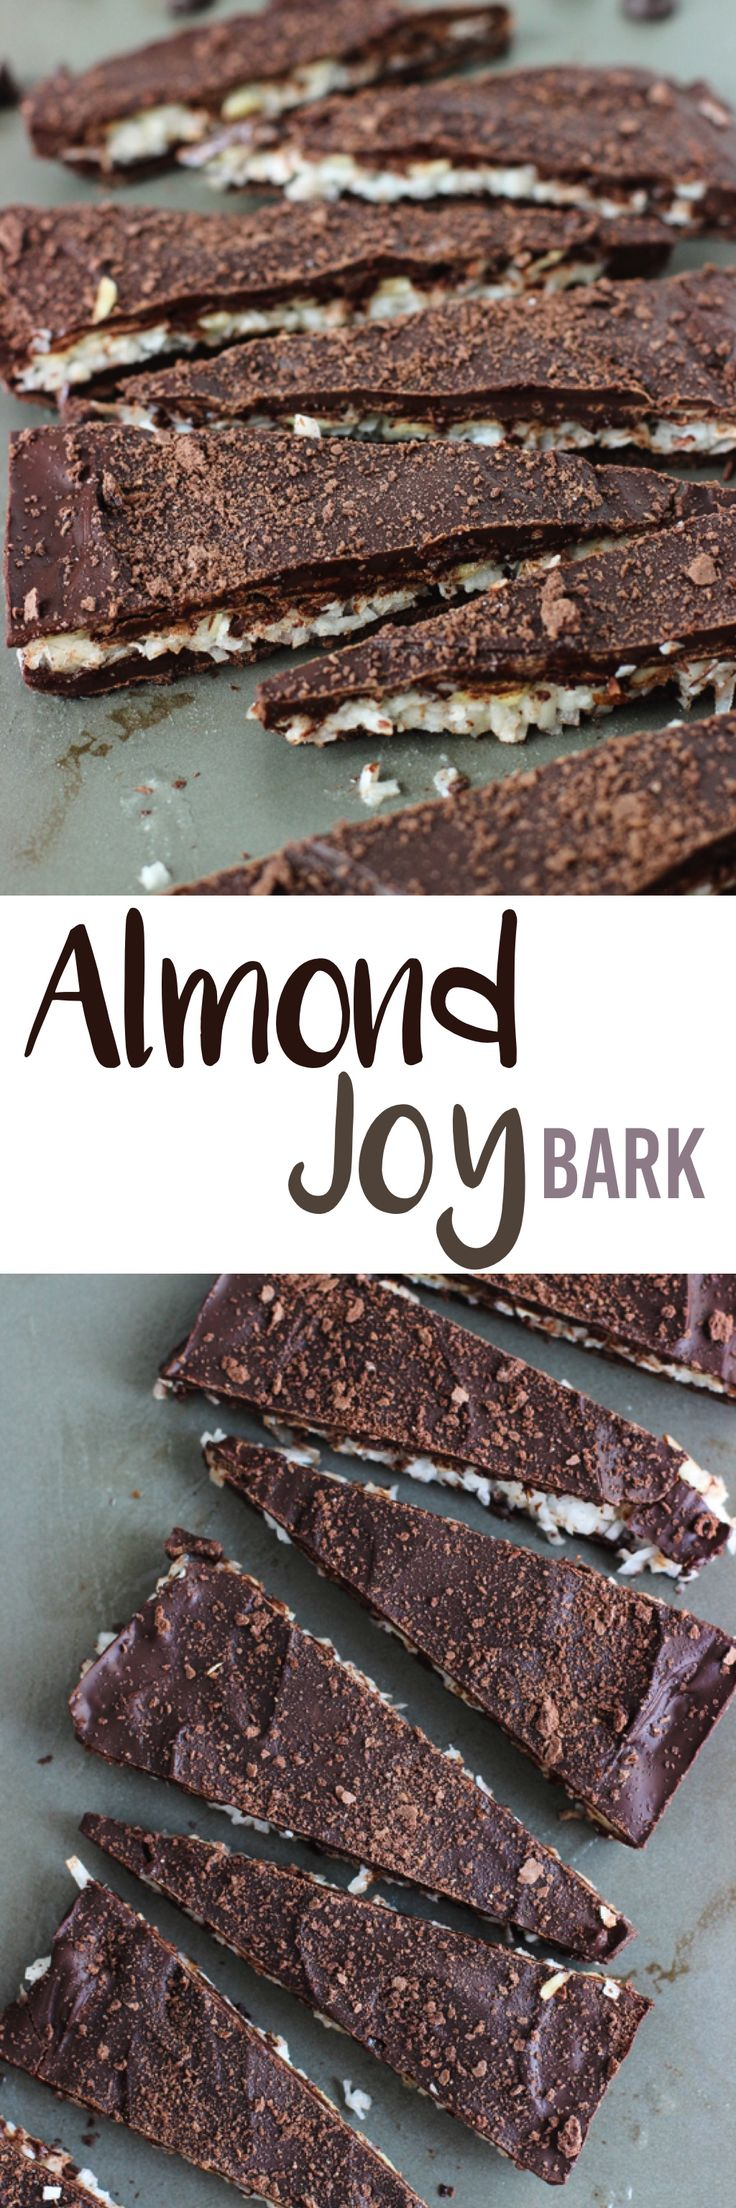 Almond Joy Bark - a no-bake bark that tastes like the candy favorite! mysequinedlife.com